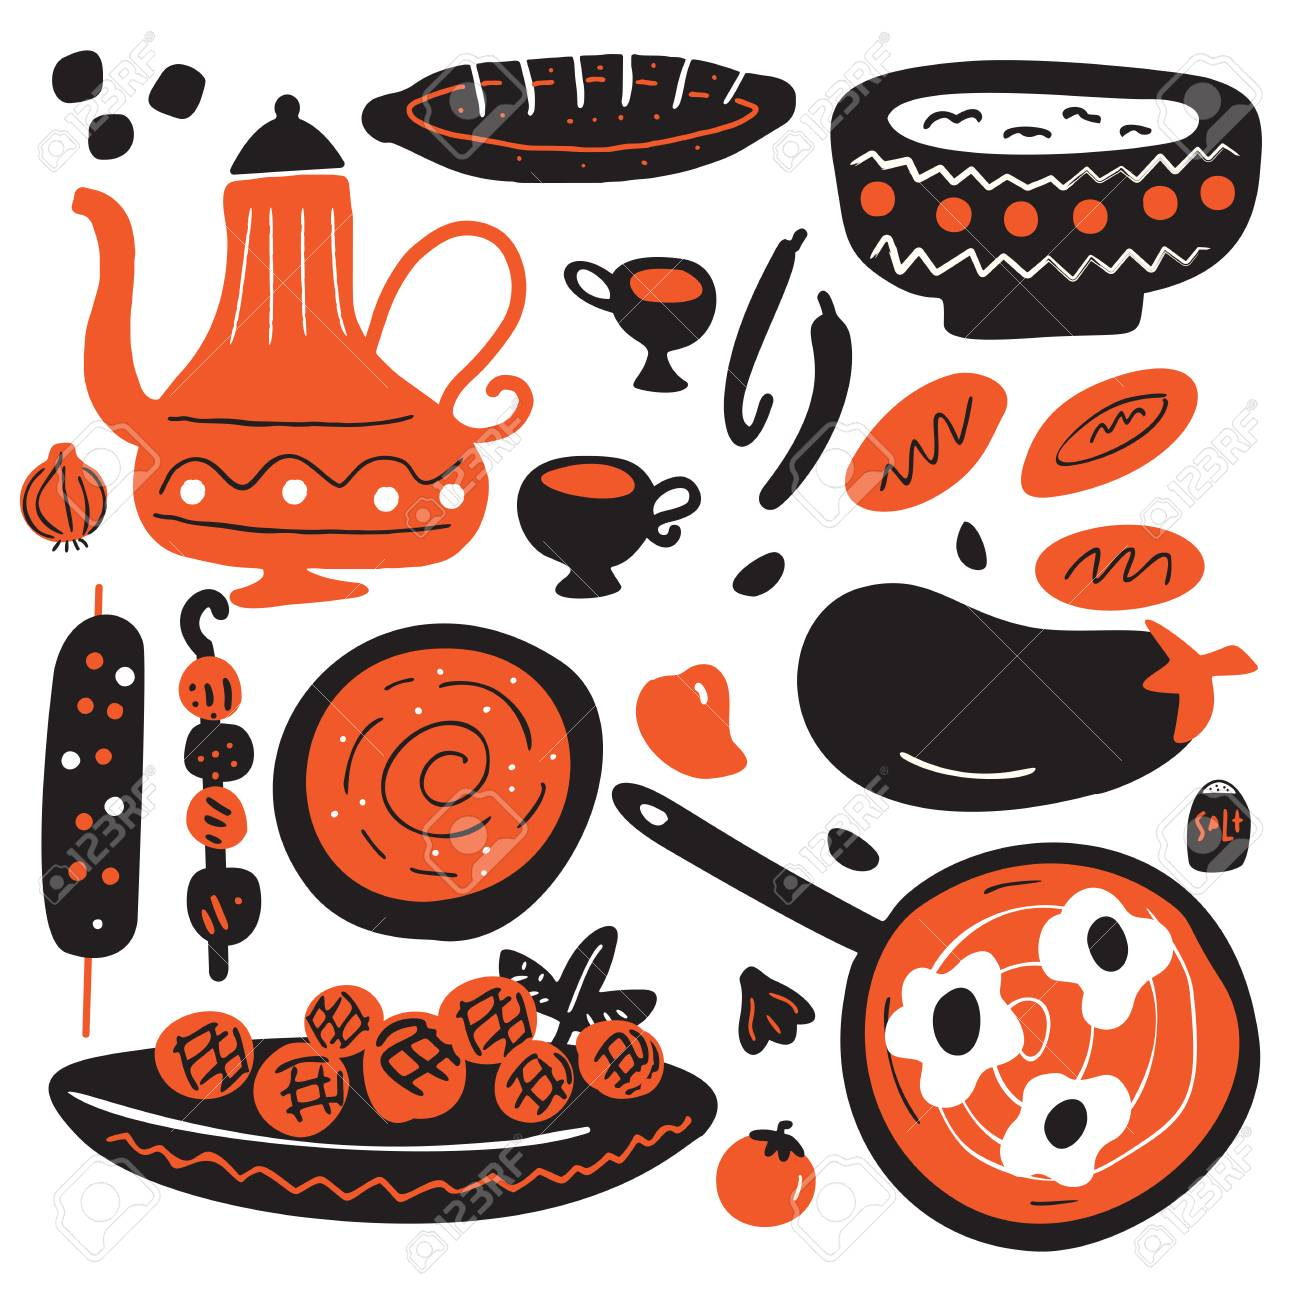 Funny hand drawn illustration of traditional middle eastern cuisine. Isolated on white background. Vector design. - 126828450